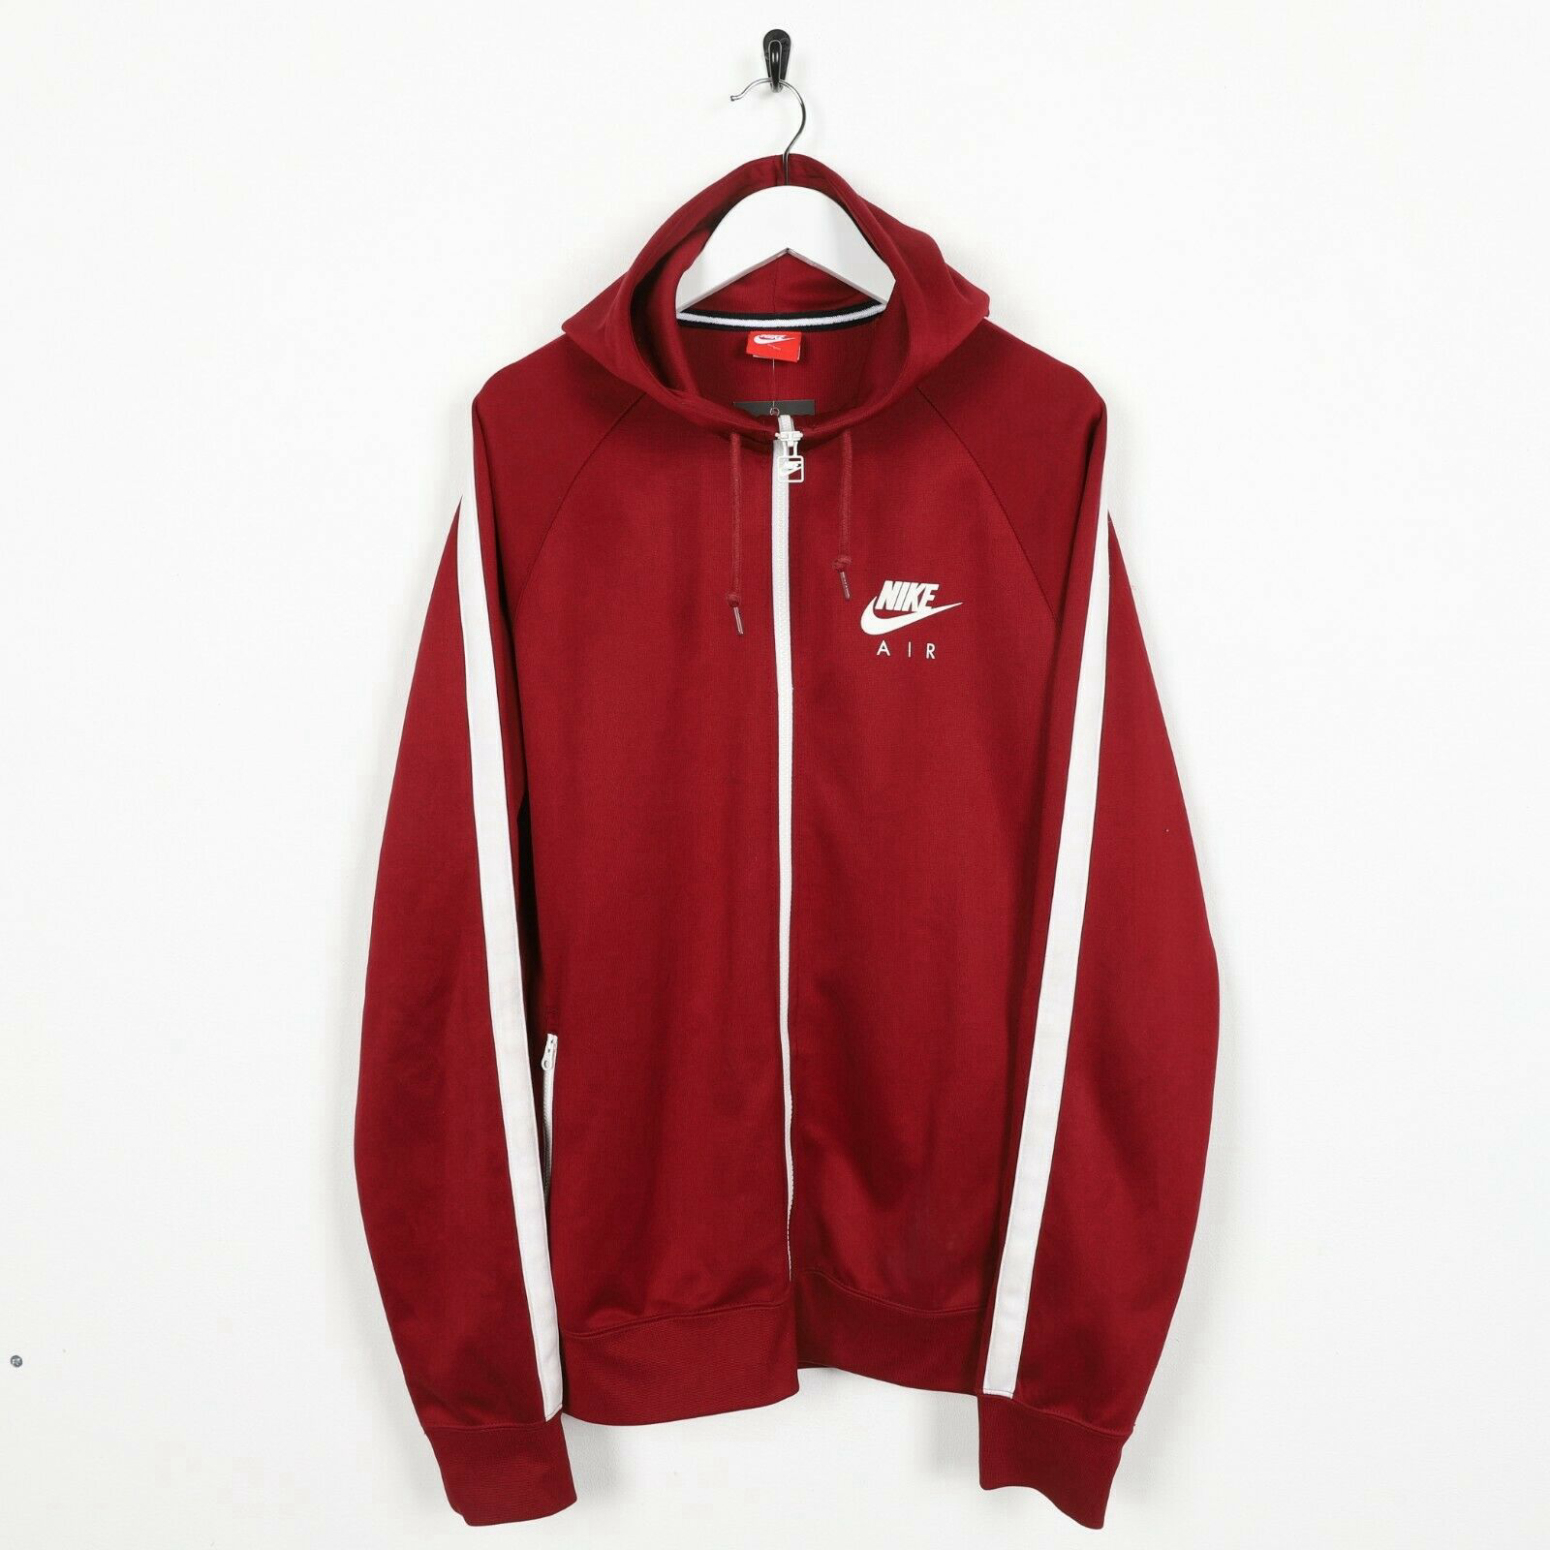 Vintage Zip Sweatshirt Red about Nike Dept Up L Details The